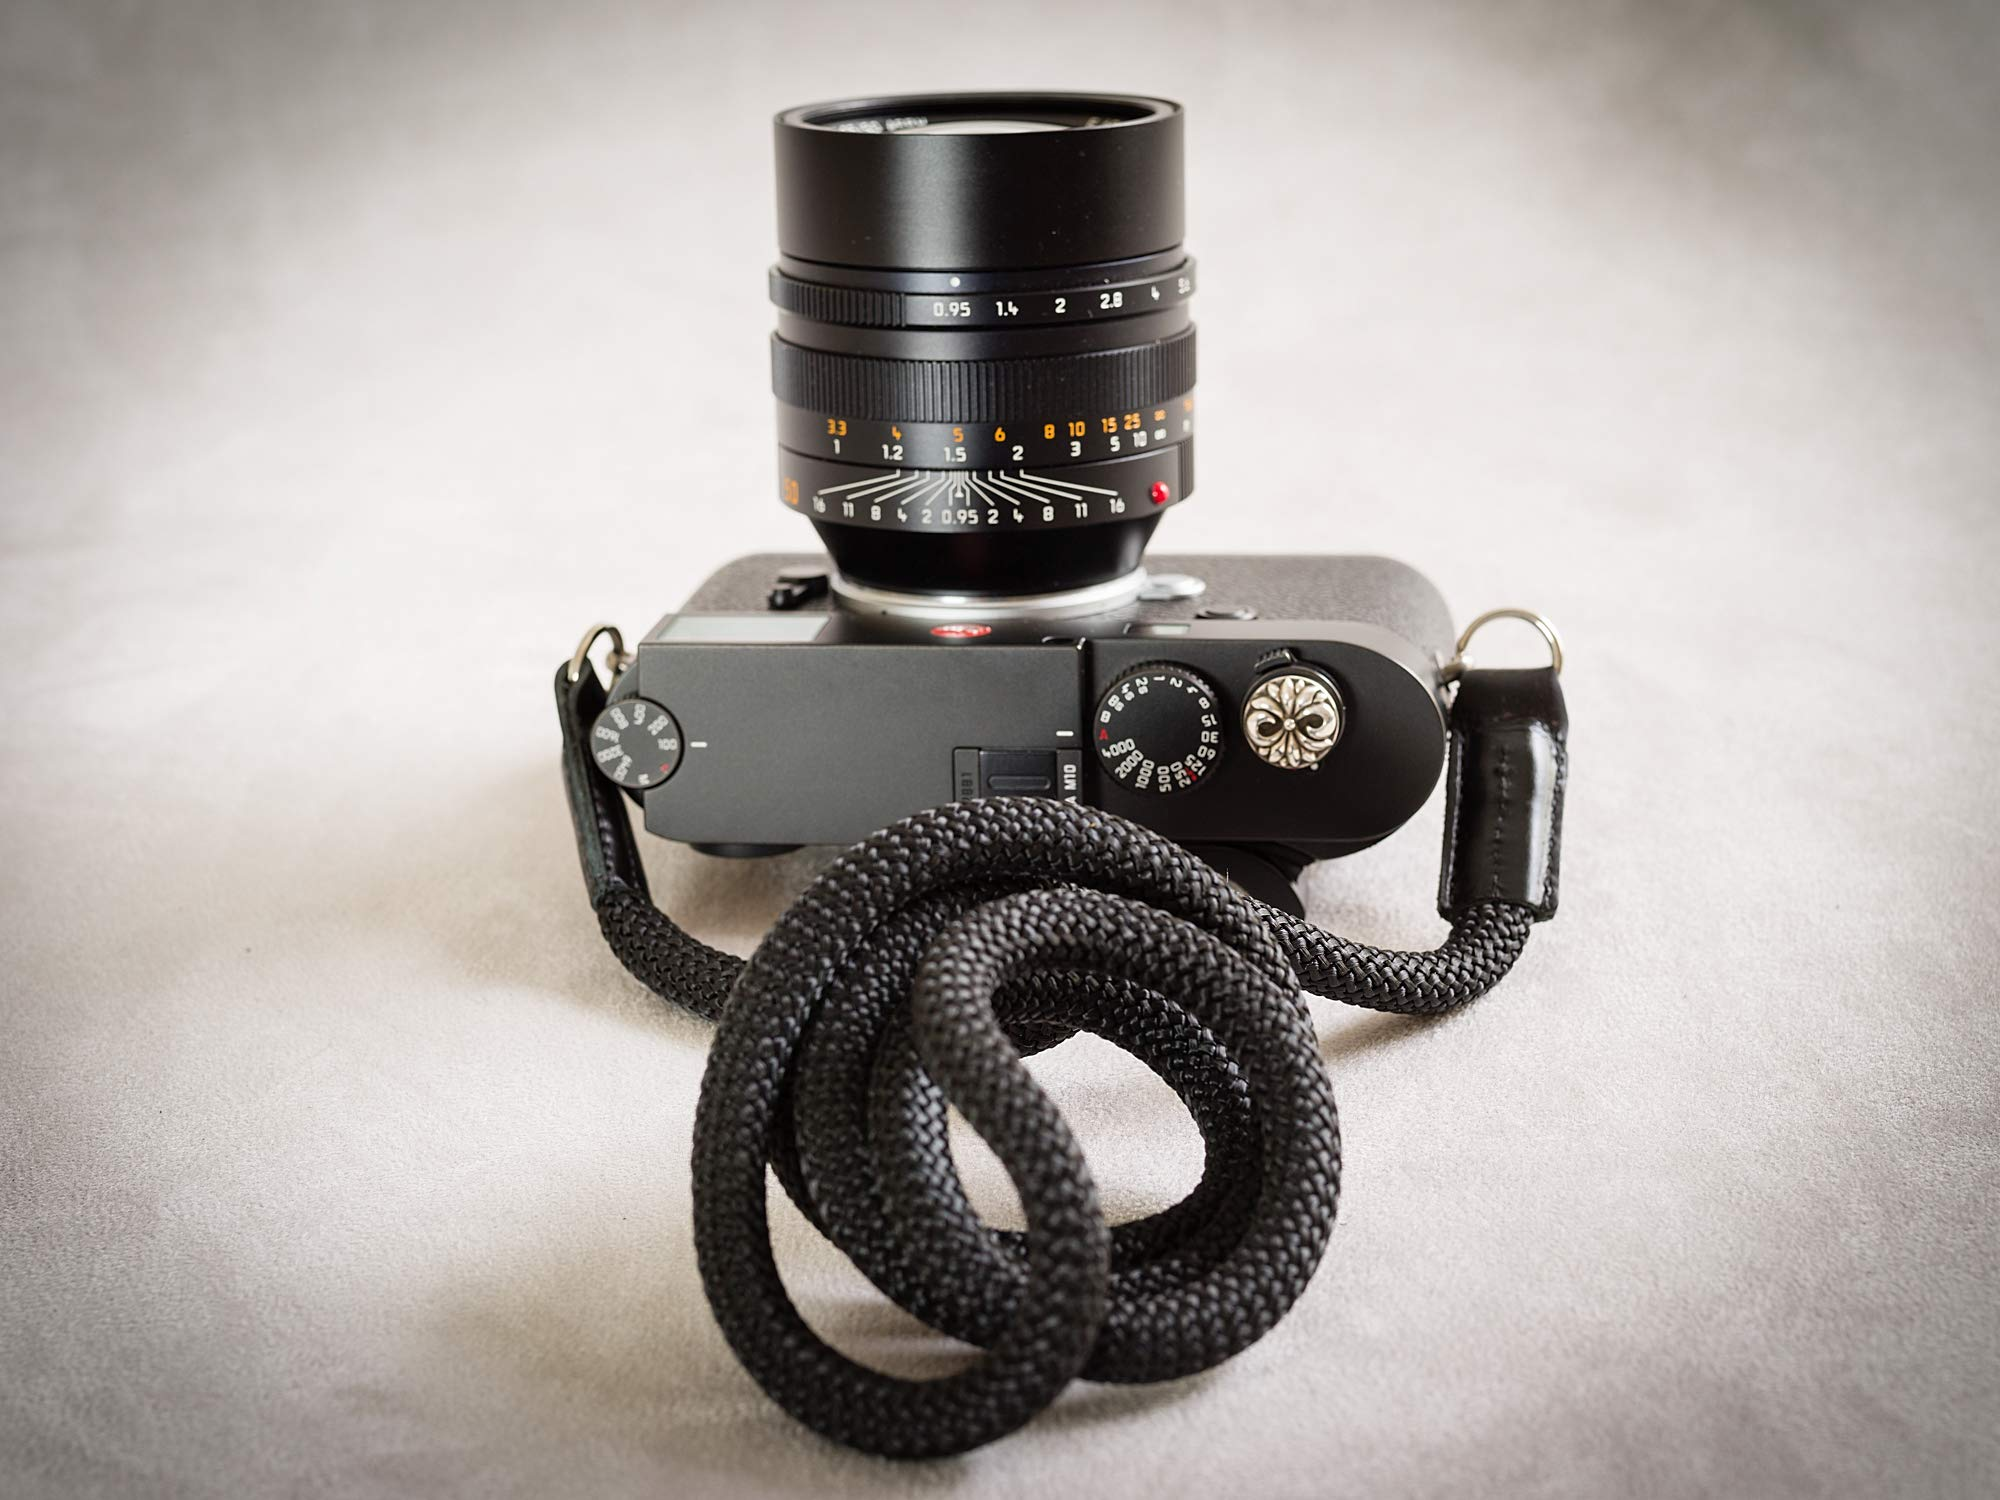 Rock & Roll Black Snake Luxury Soft Climbing Rope Camera Strap 50'' inches Long by Rock and Roll for Leica Sony Fuji Olympus Nikon